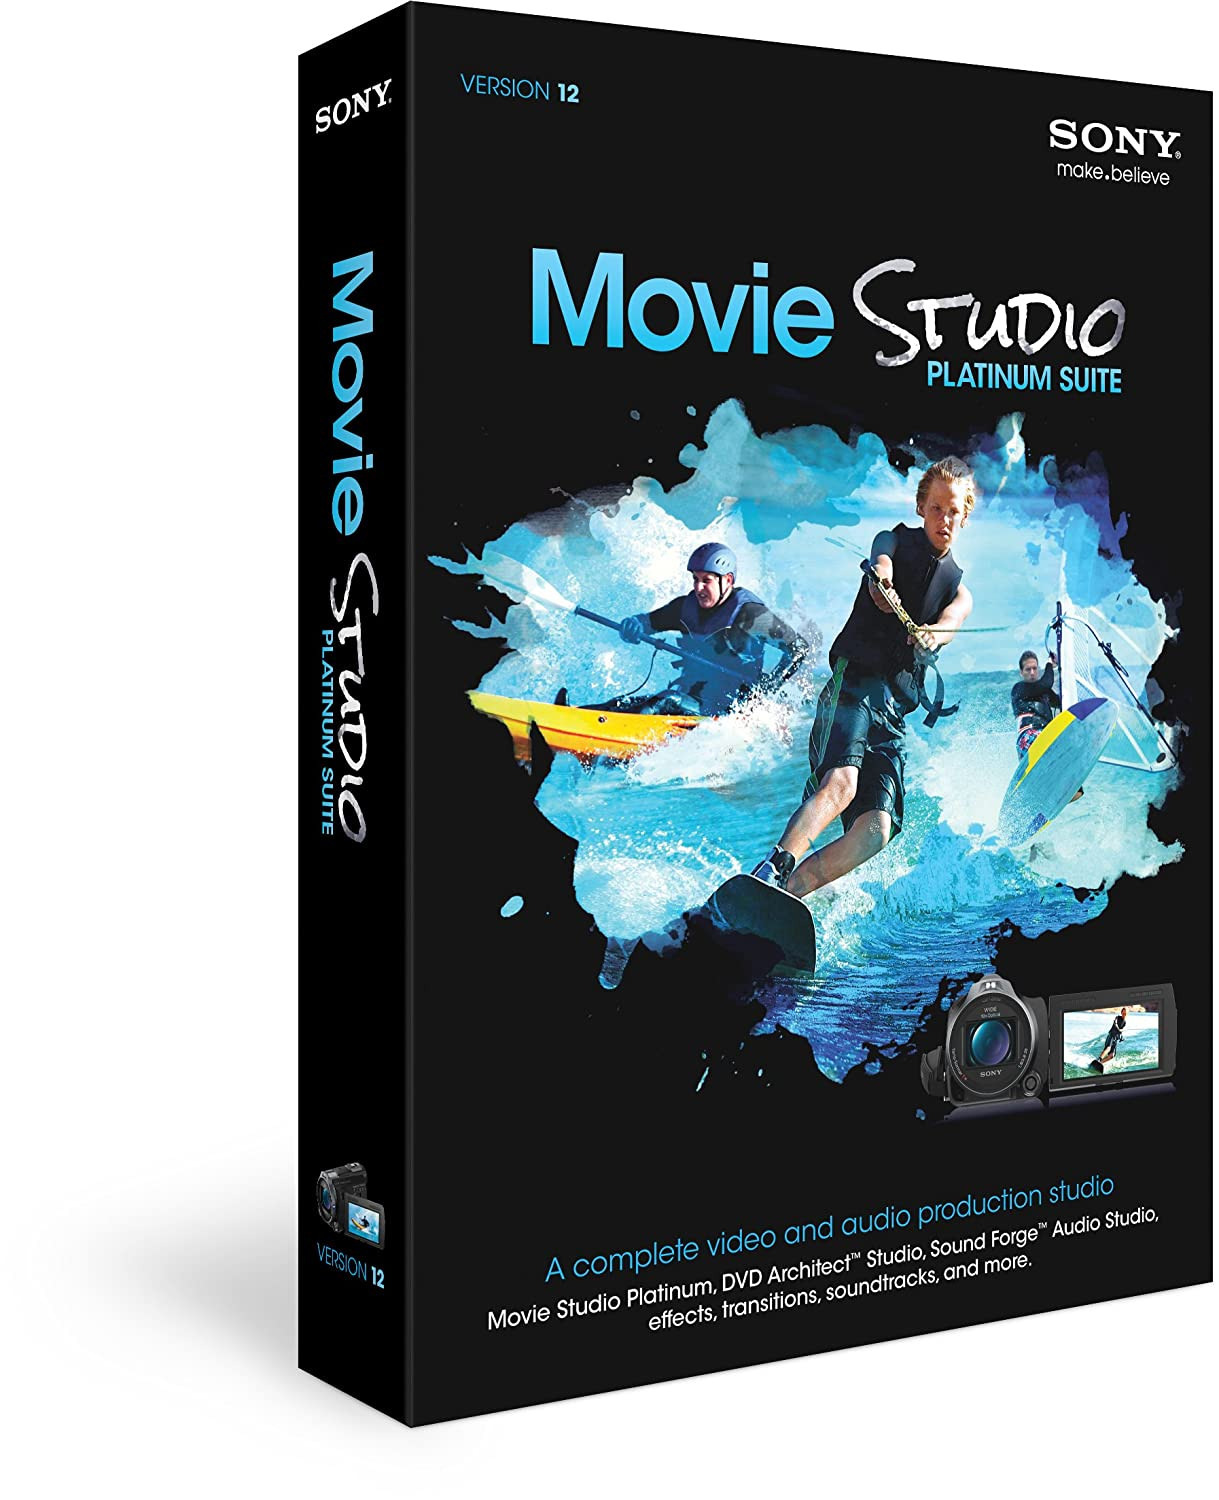 Sony Movie Studio Platinum Suite 12 $59.99